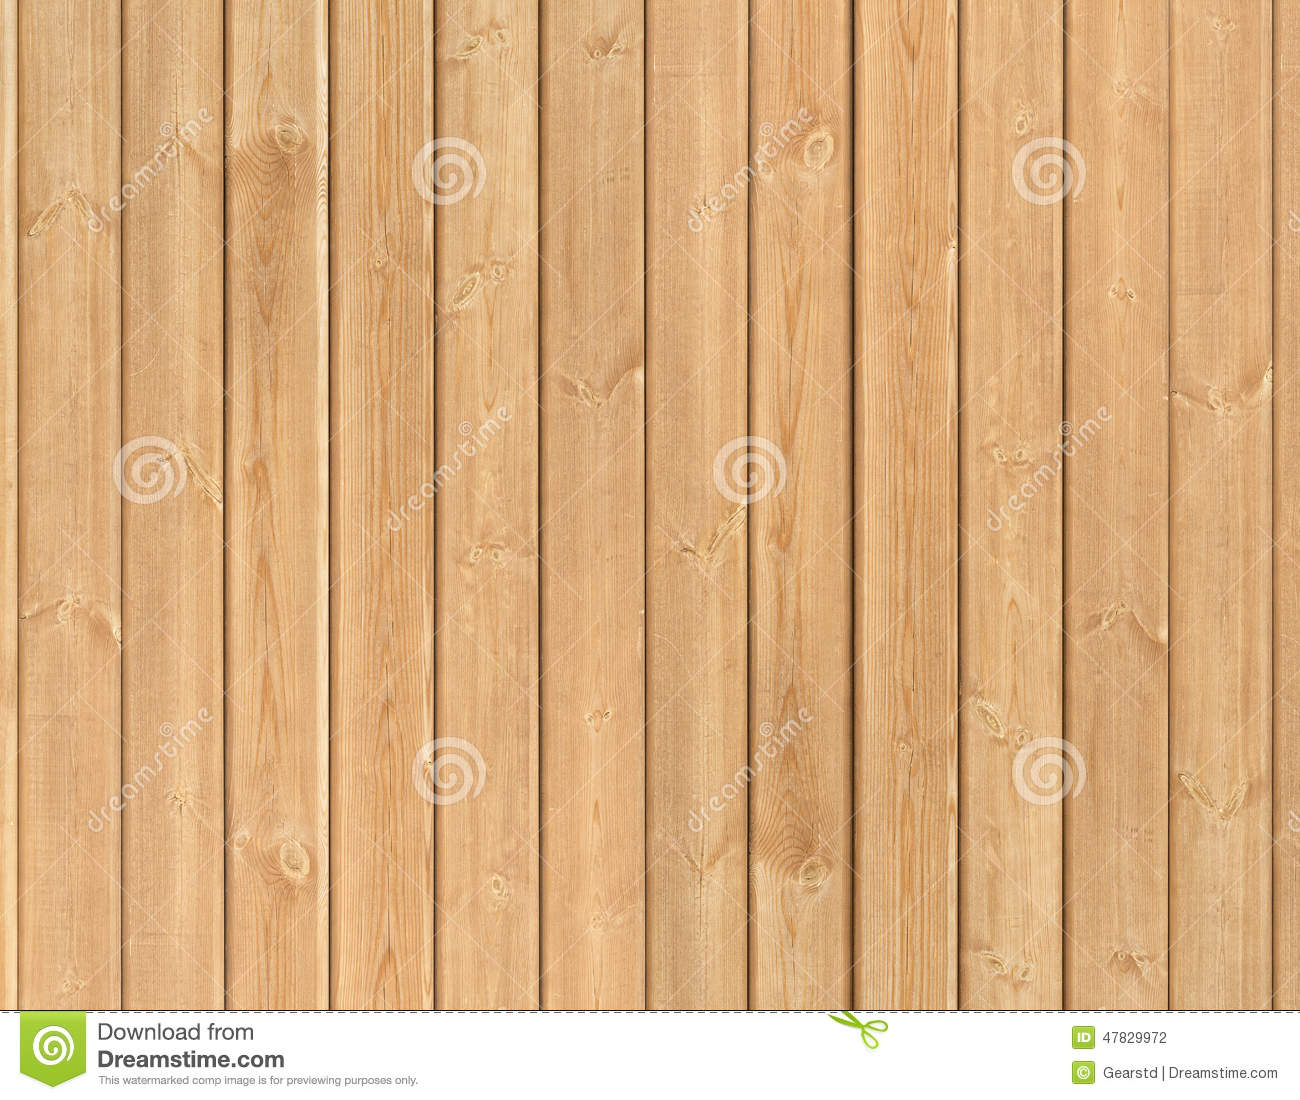 Photo Of Vertical Clean Wood Panels Stock Photo